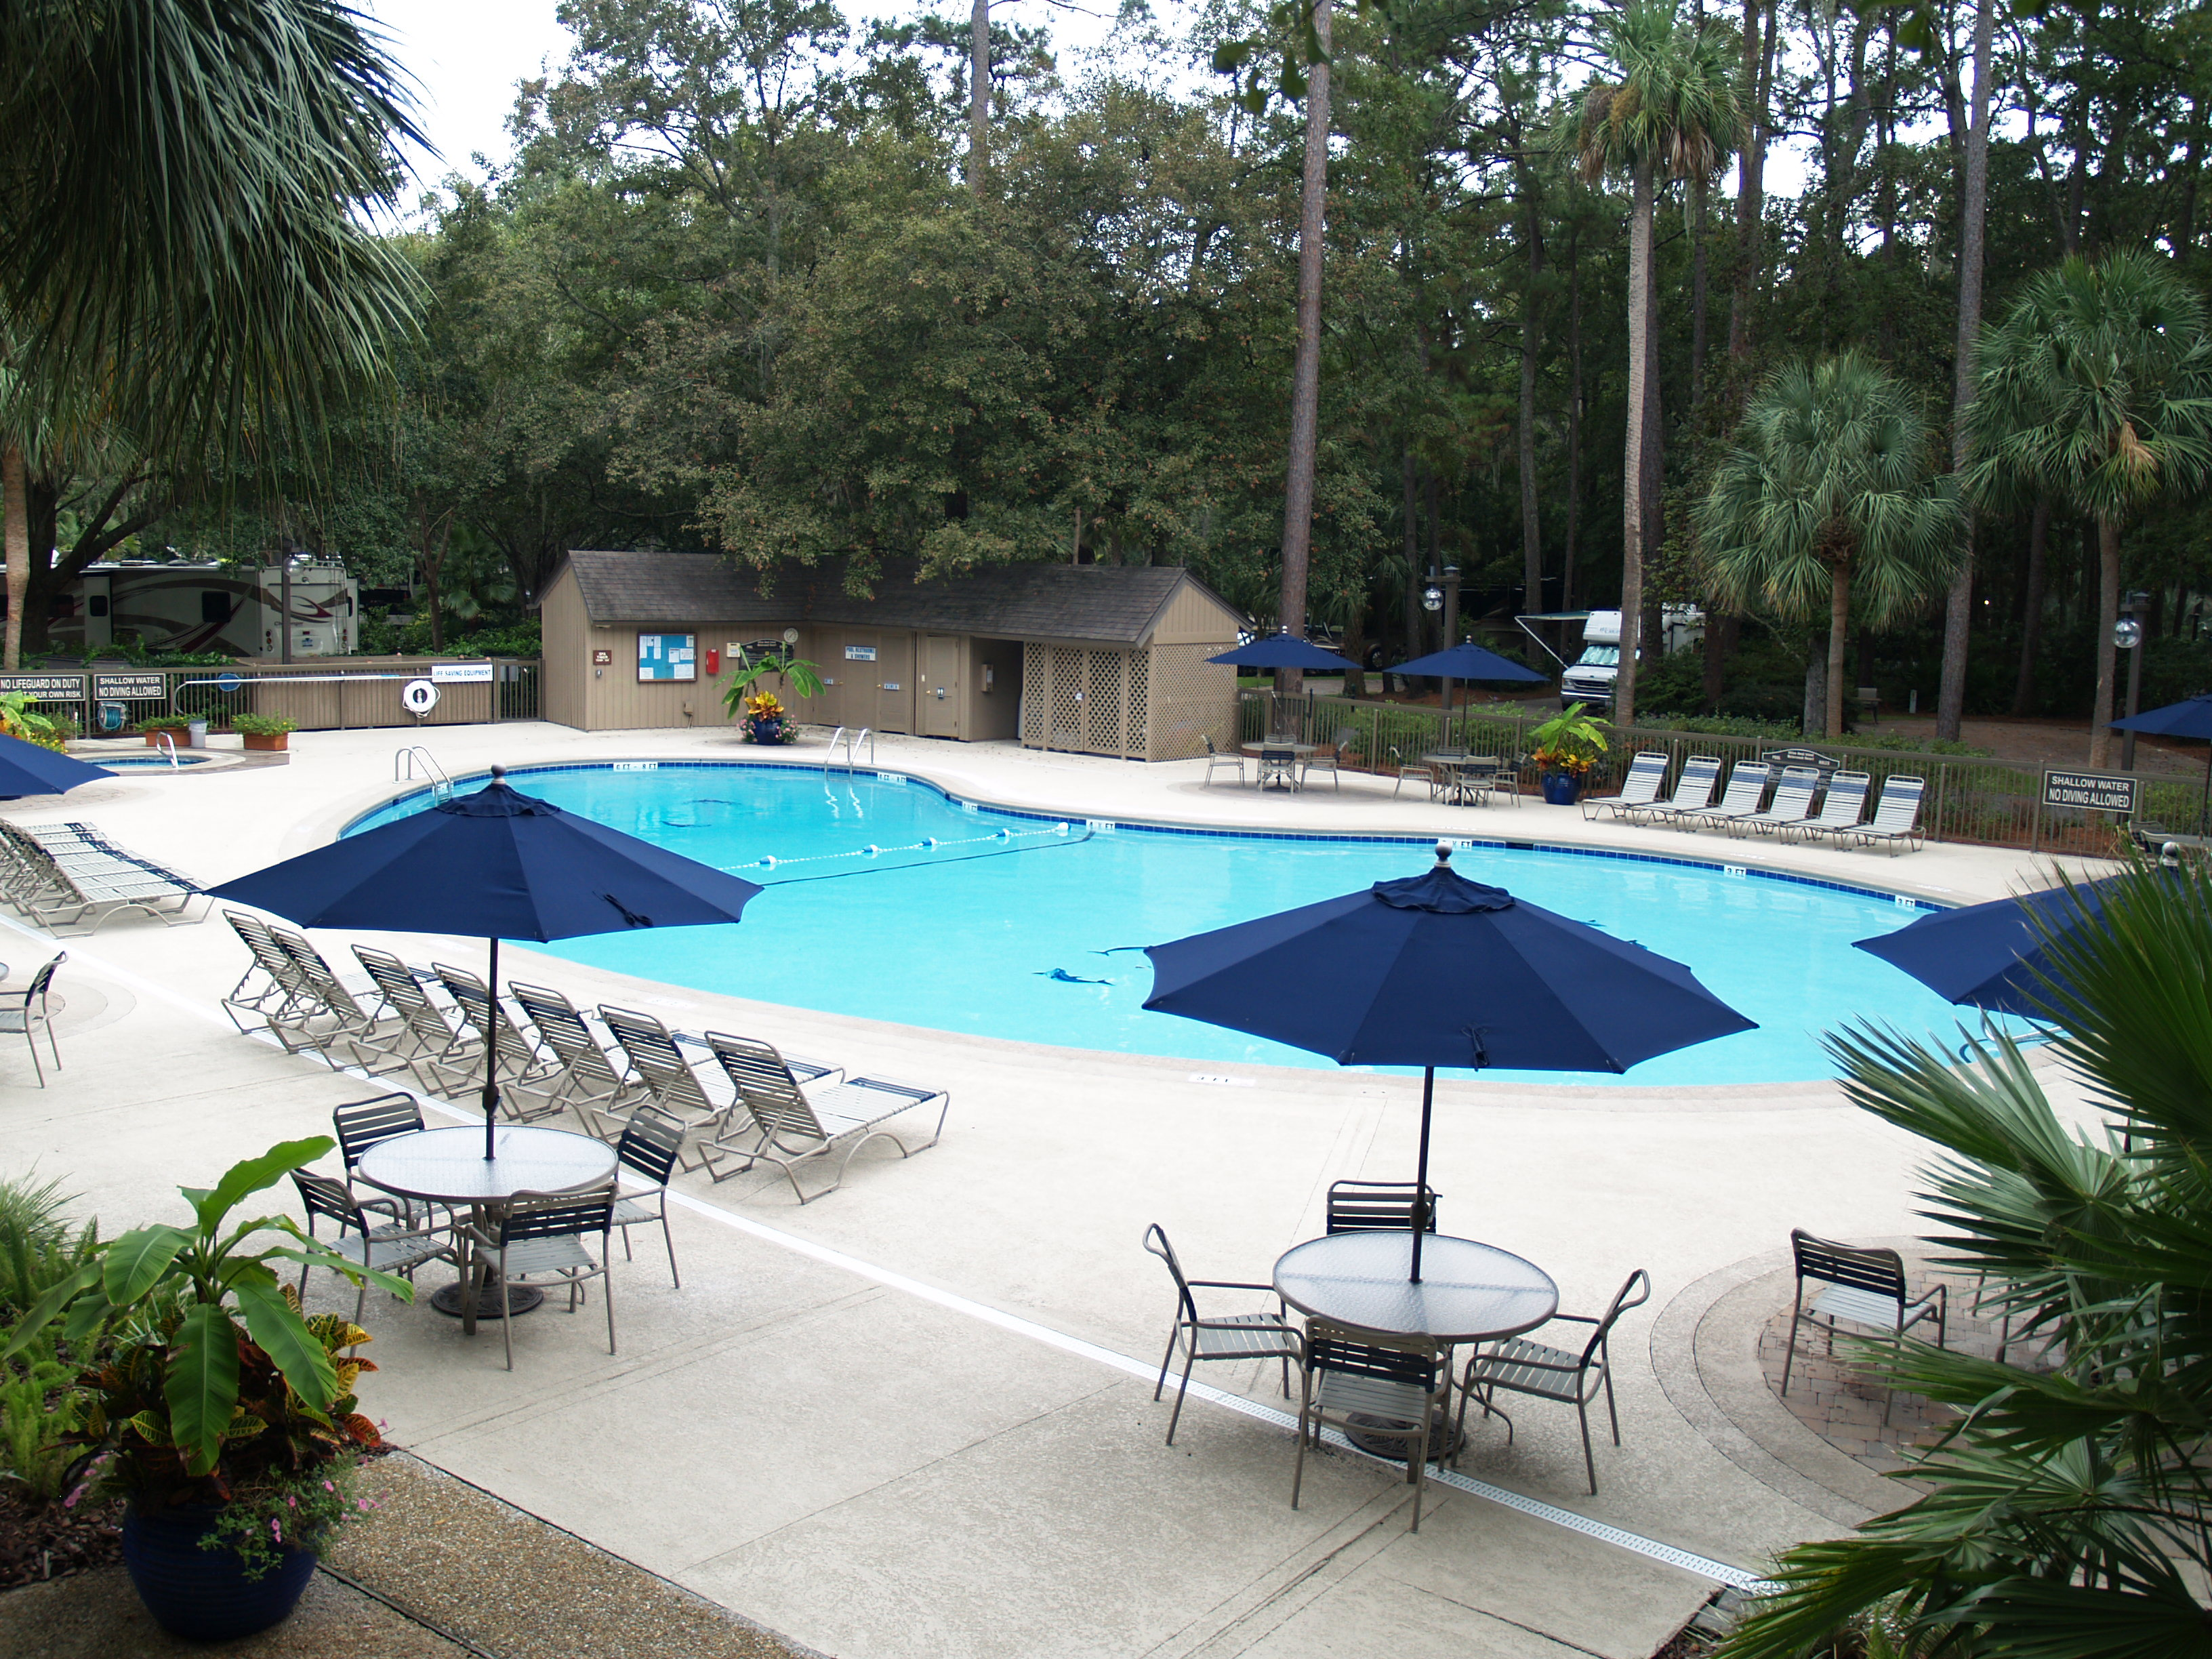 hilton head island motorcoach resort find campgrounds near